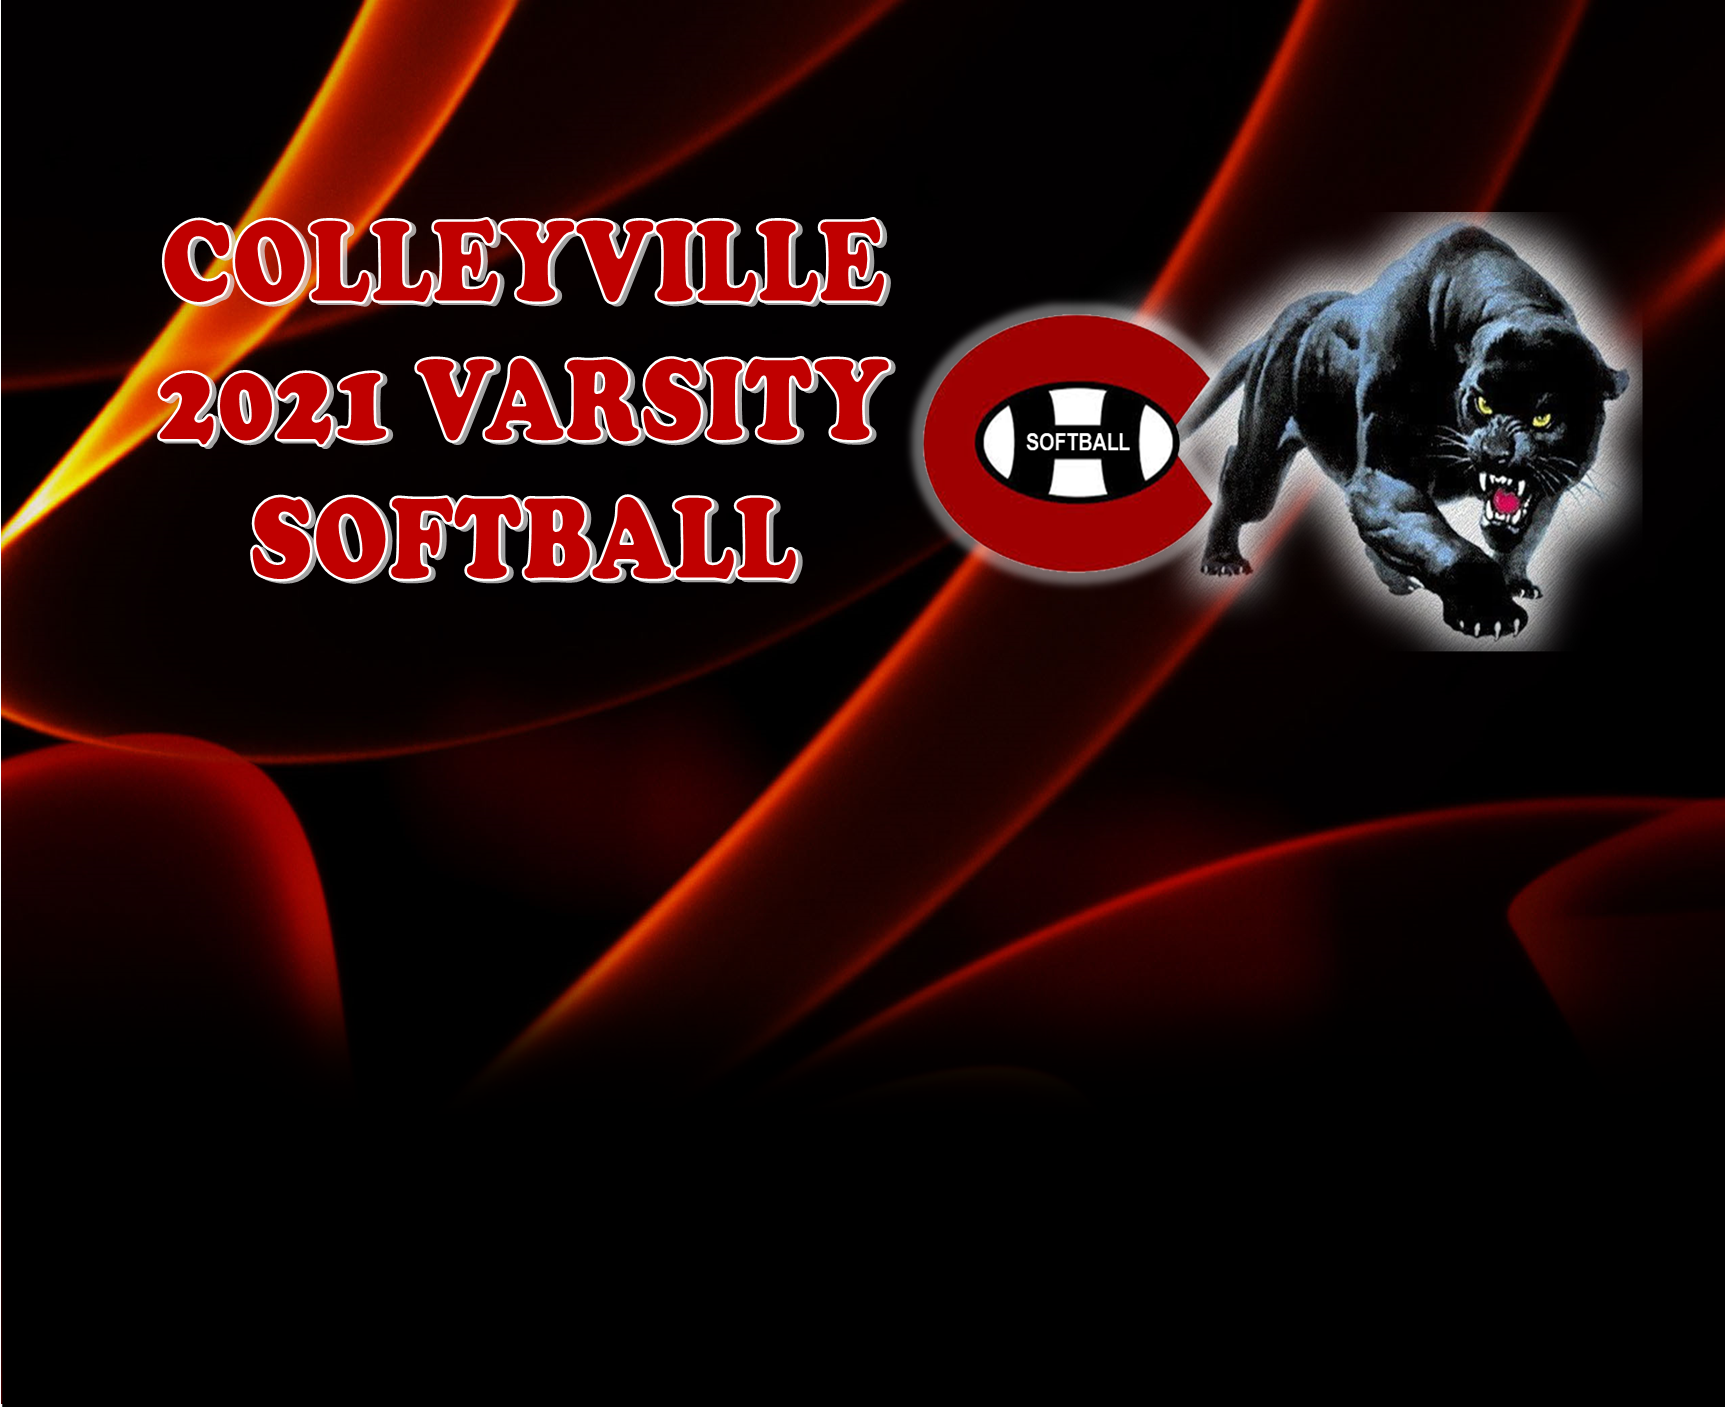 GCISD Softball: Colleyville Panthers Subdued by Richland Royals 6-2